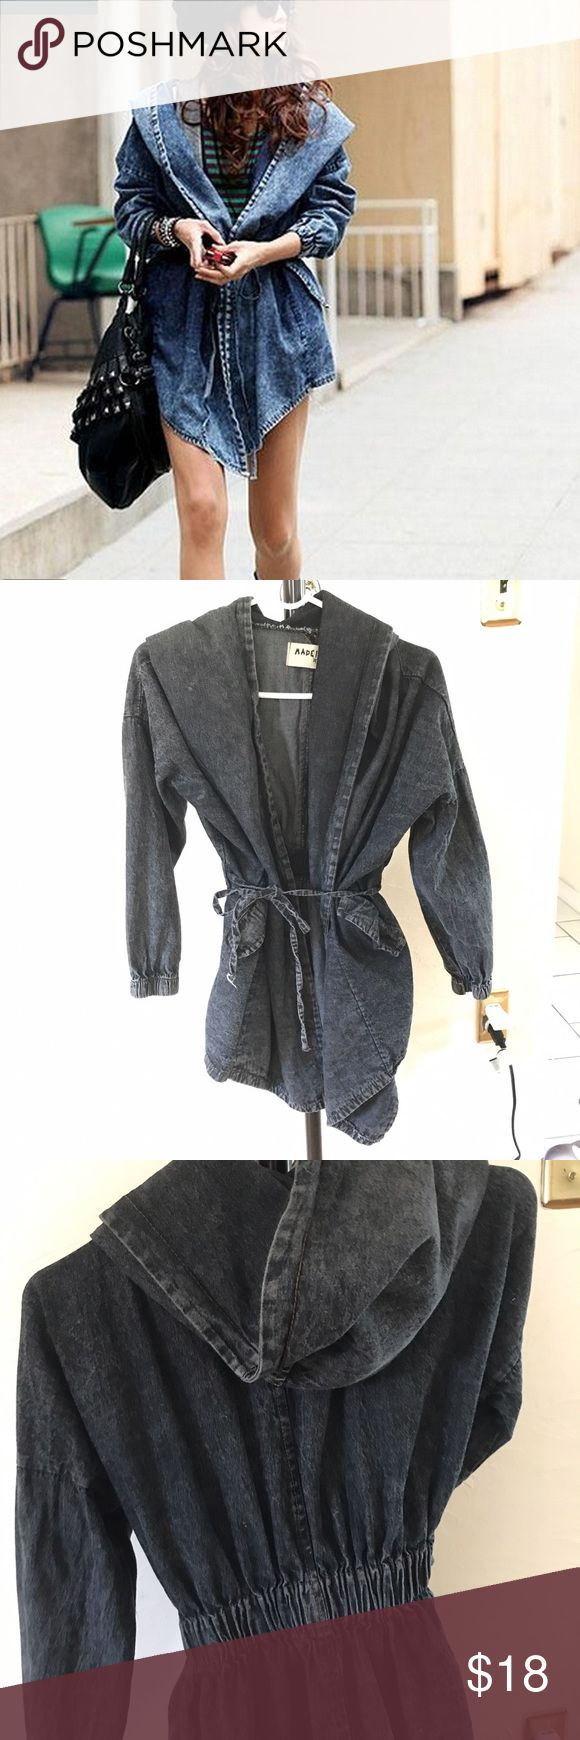 Black Denim Hooded Trench Coat Black Denim Hooded Trench Coat. BRAND NEW, GIVE ME OFFERS! Jackets & Coats Trench Coats